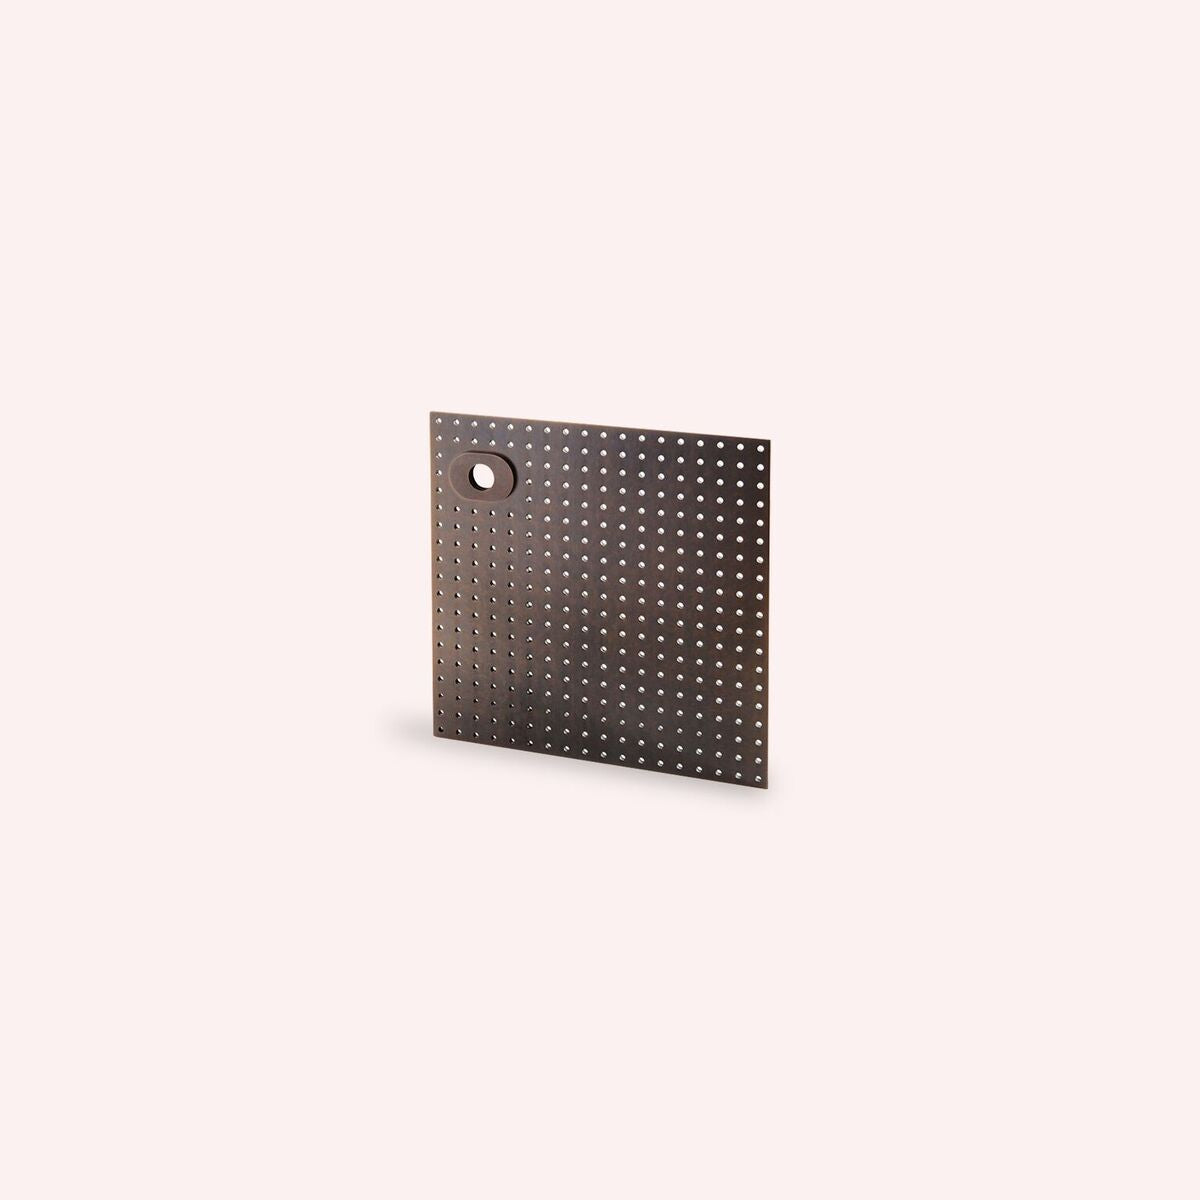 Stardust - Square Plate perforated